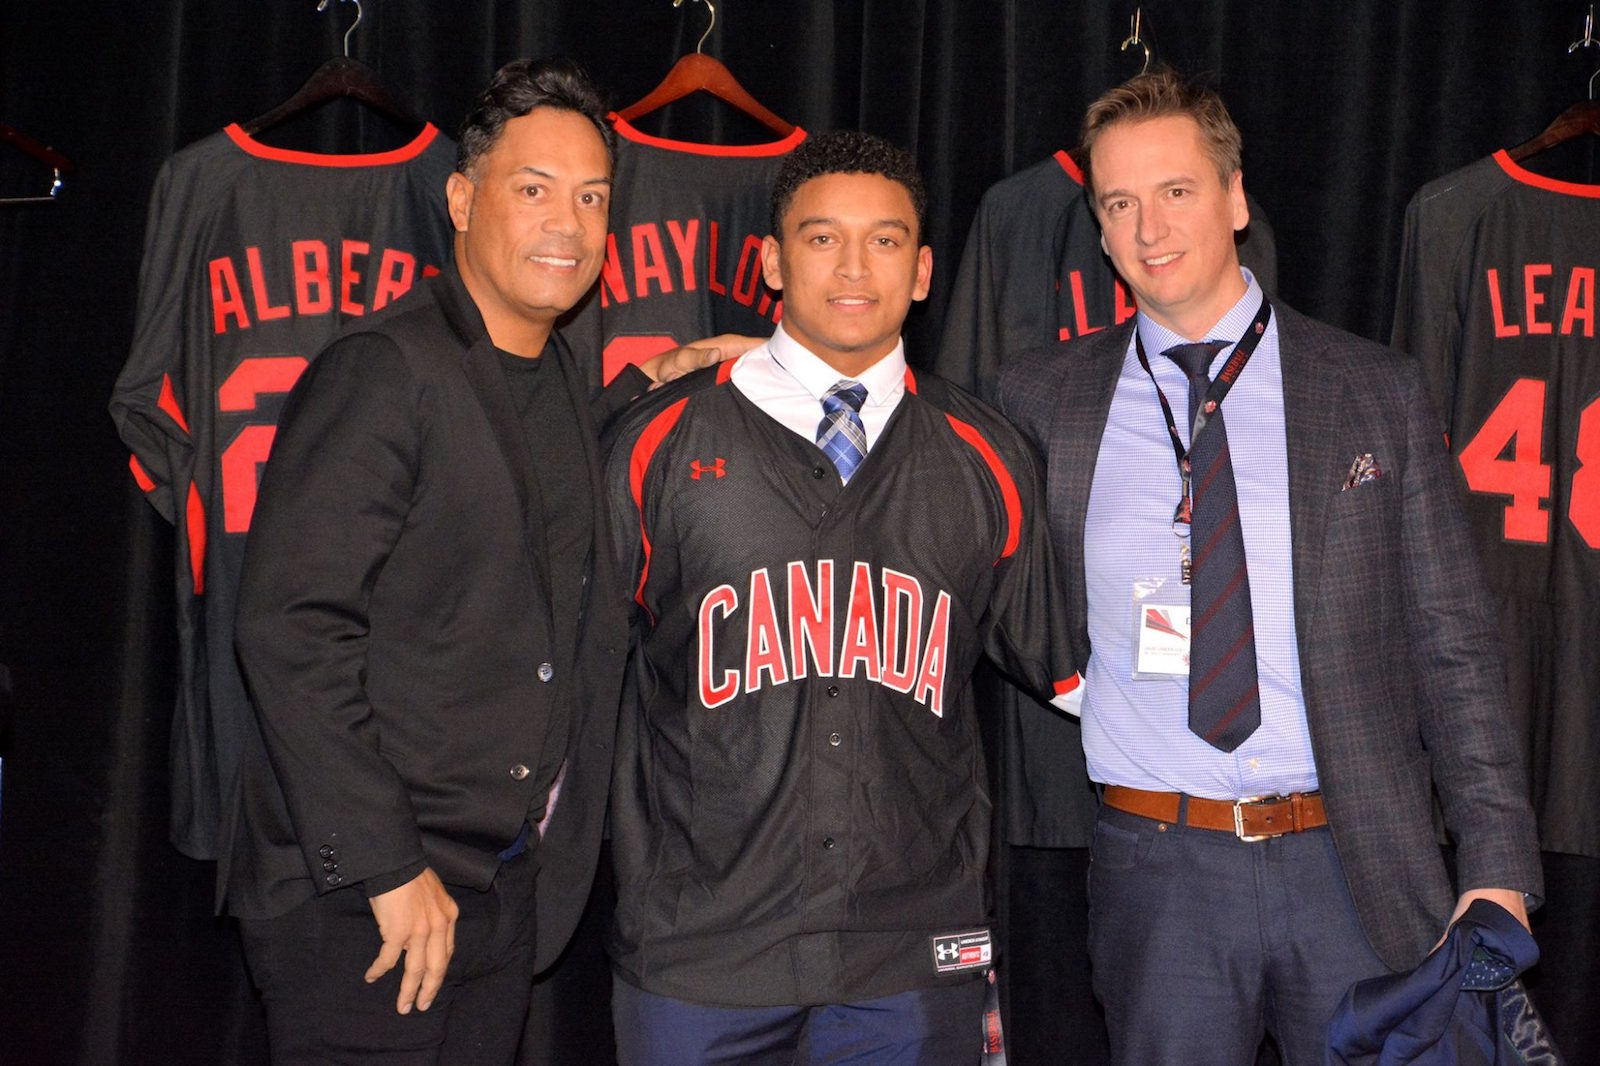 Young stars take centre stage at National Teams Banquet